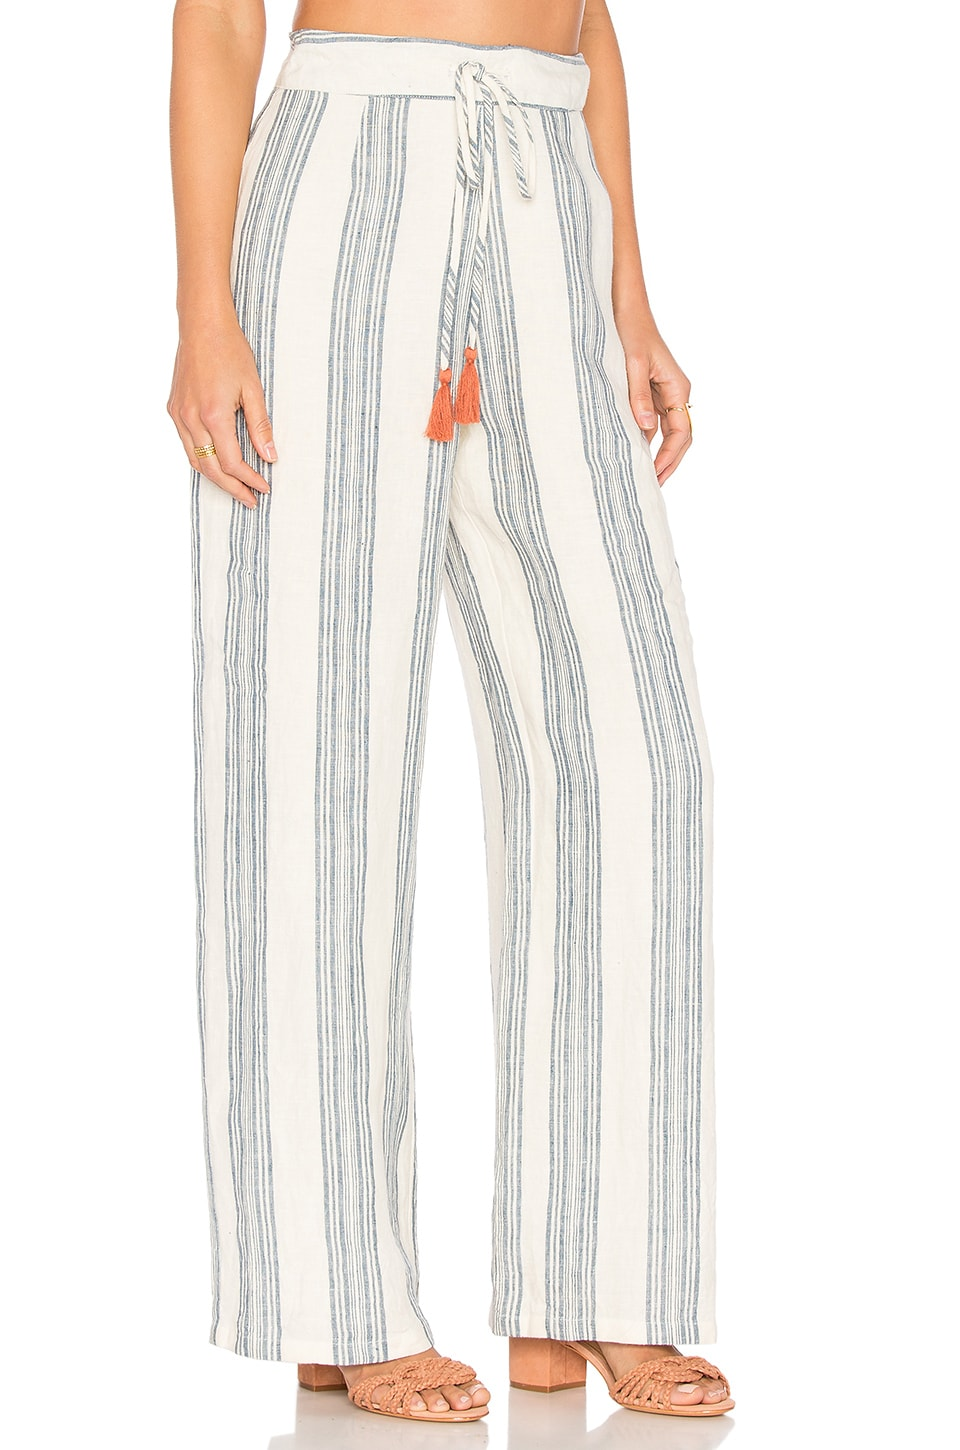 Tularosa Marley Pants in Chambray Stripe